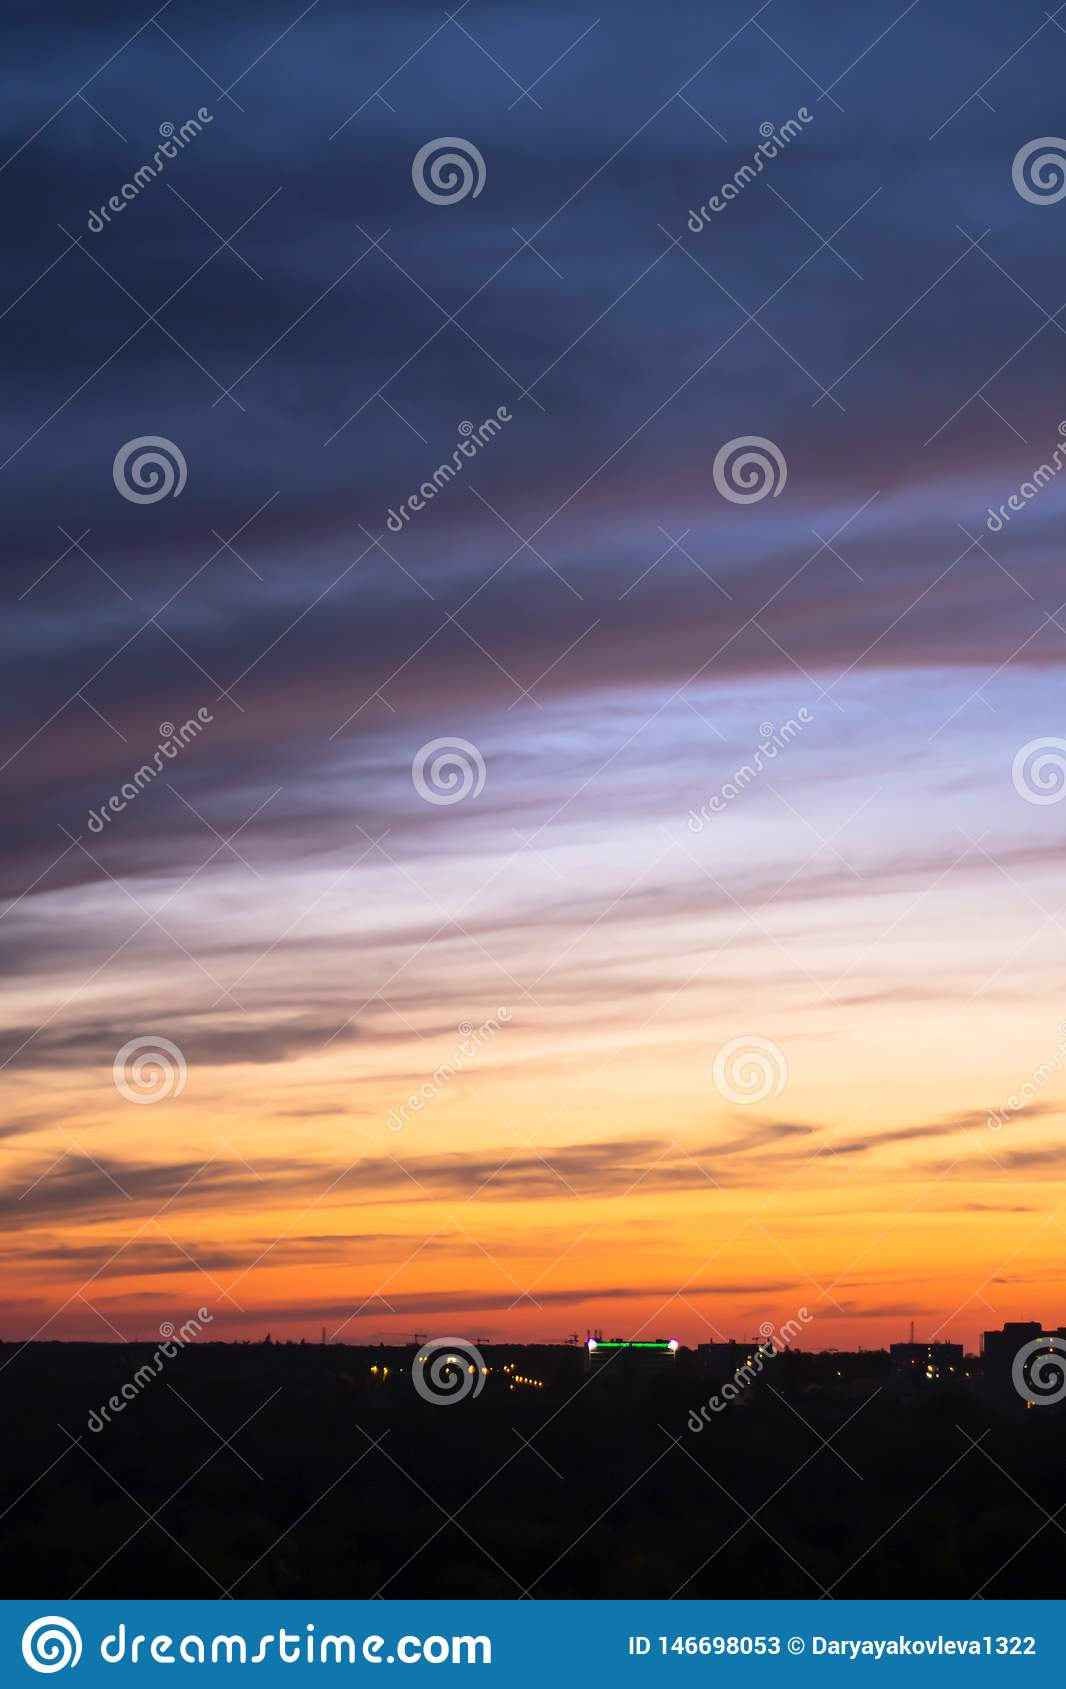 Sunset sky blue-orange colors with dramatic clouds